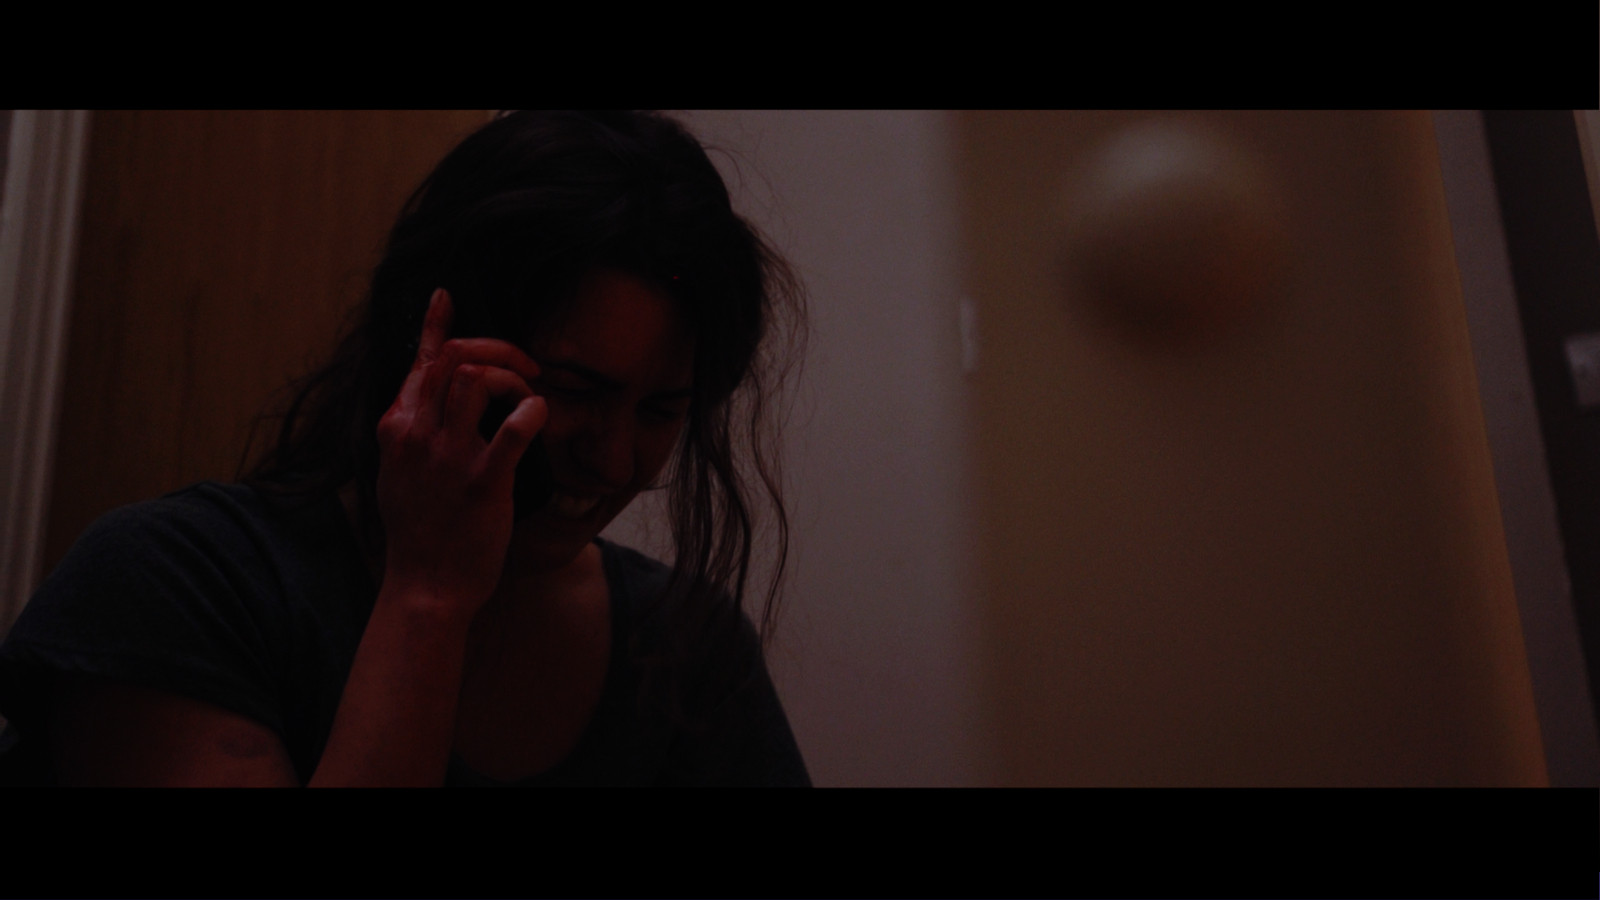 Still from Fresh Media Productions short film Trapped about domestic violence starring Gaia Poli